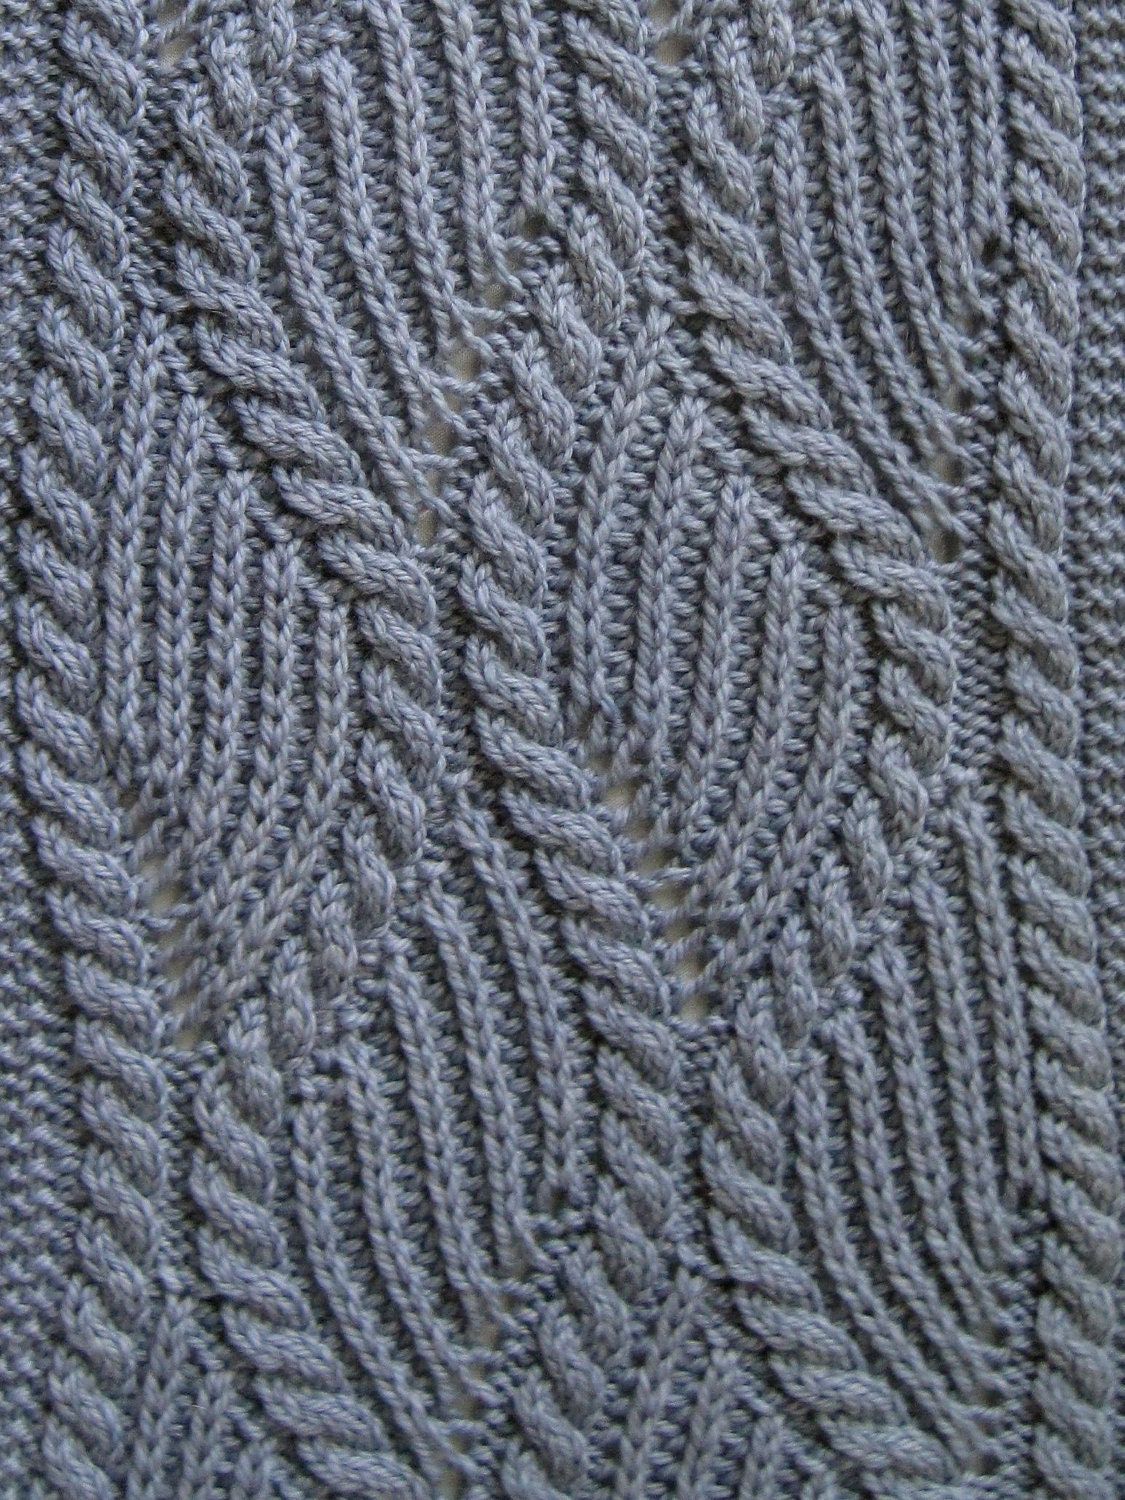 Knit Scarf Pattern: Brioche and Traveling Cable Knitting